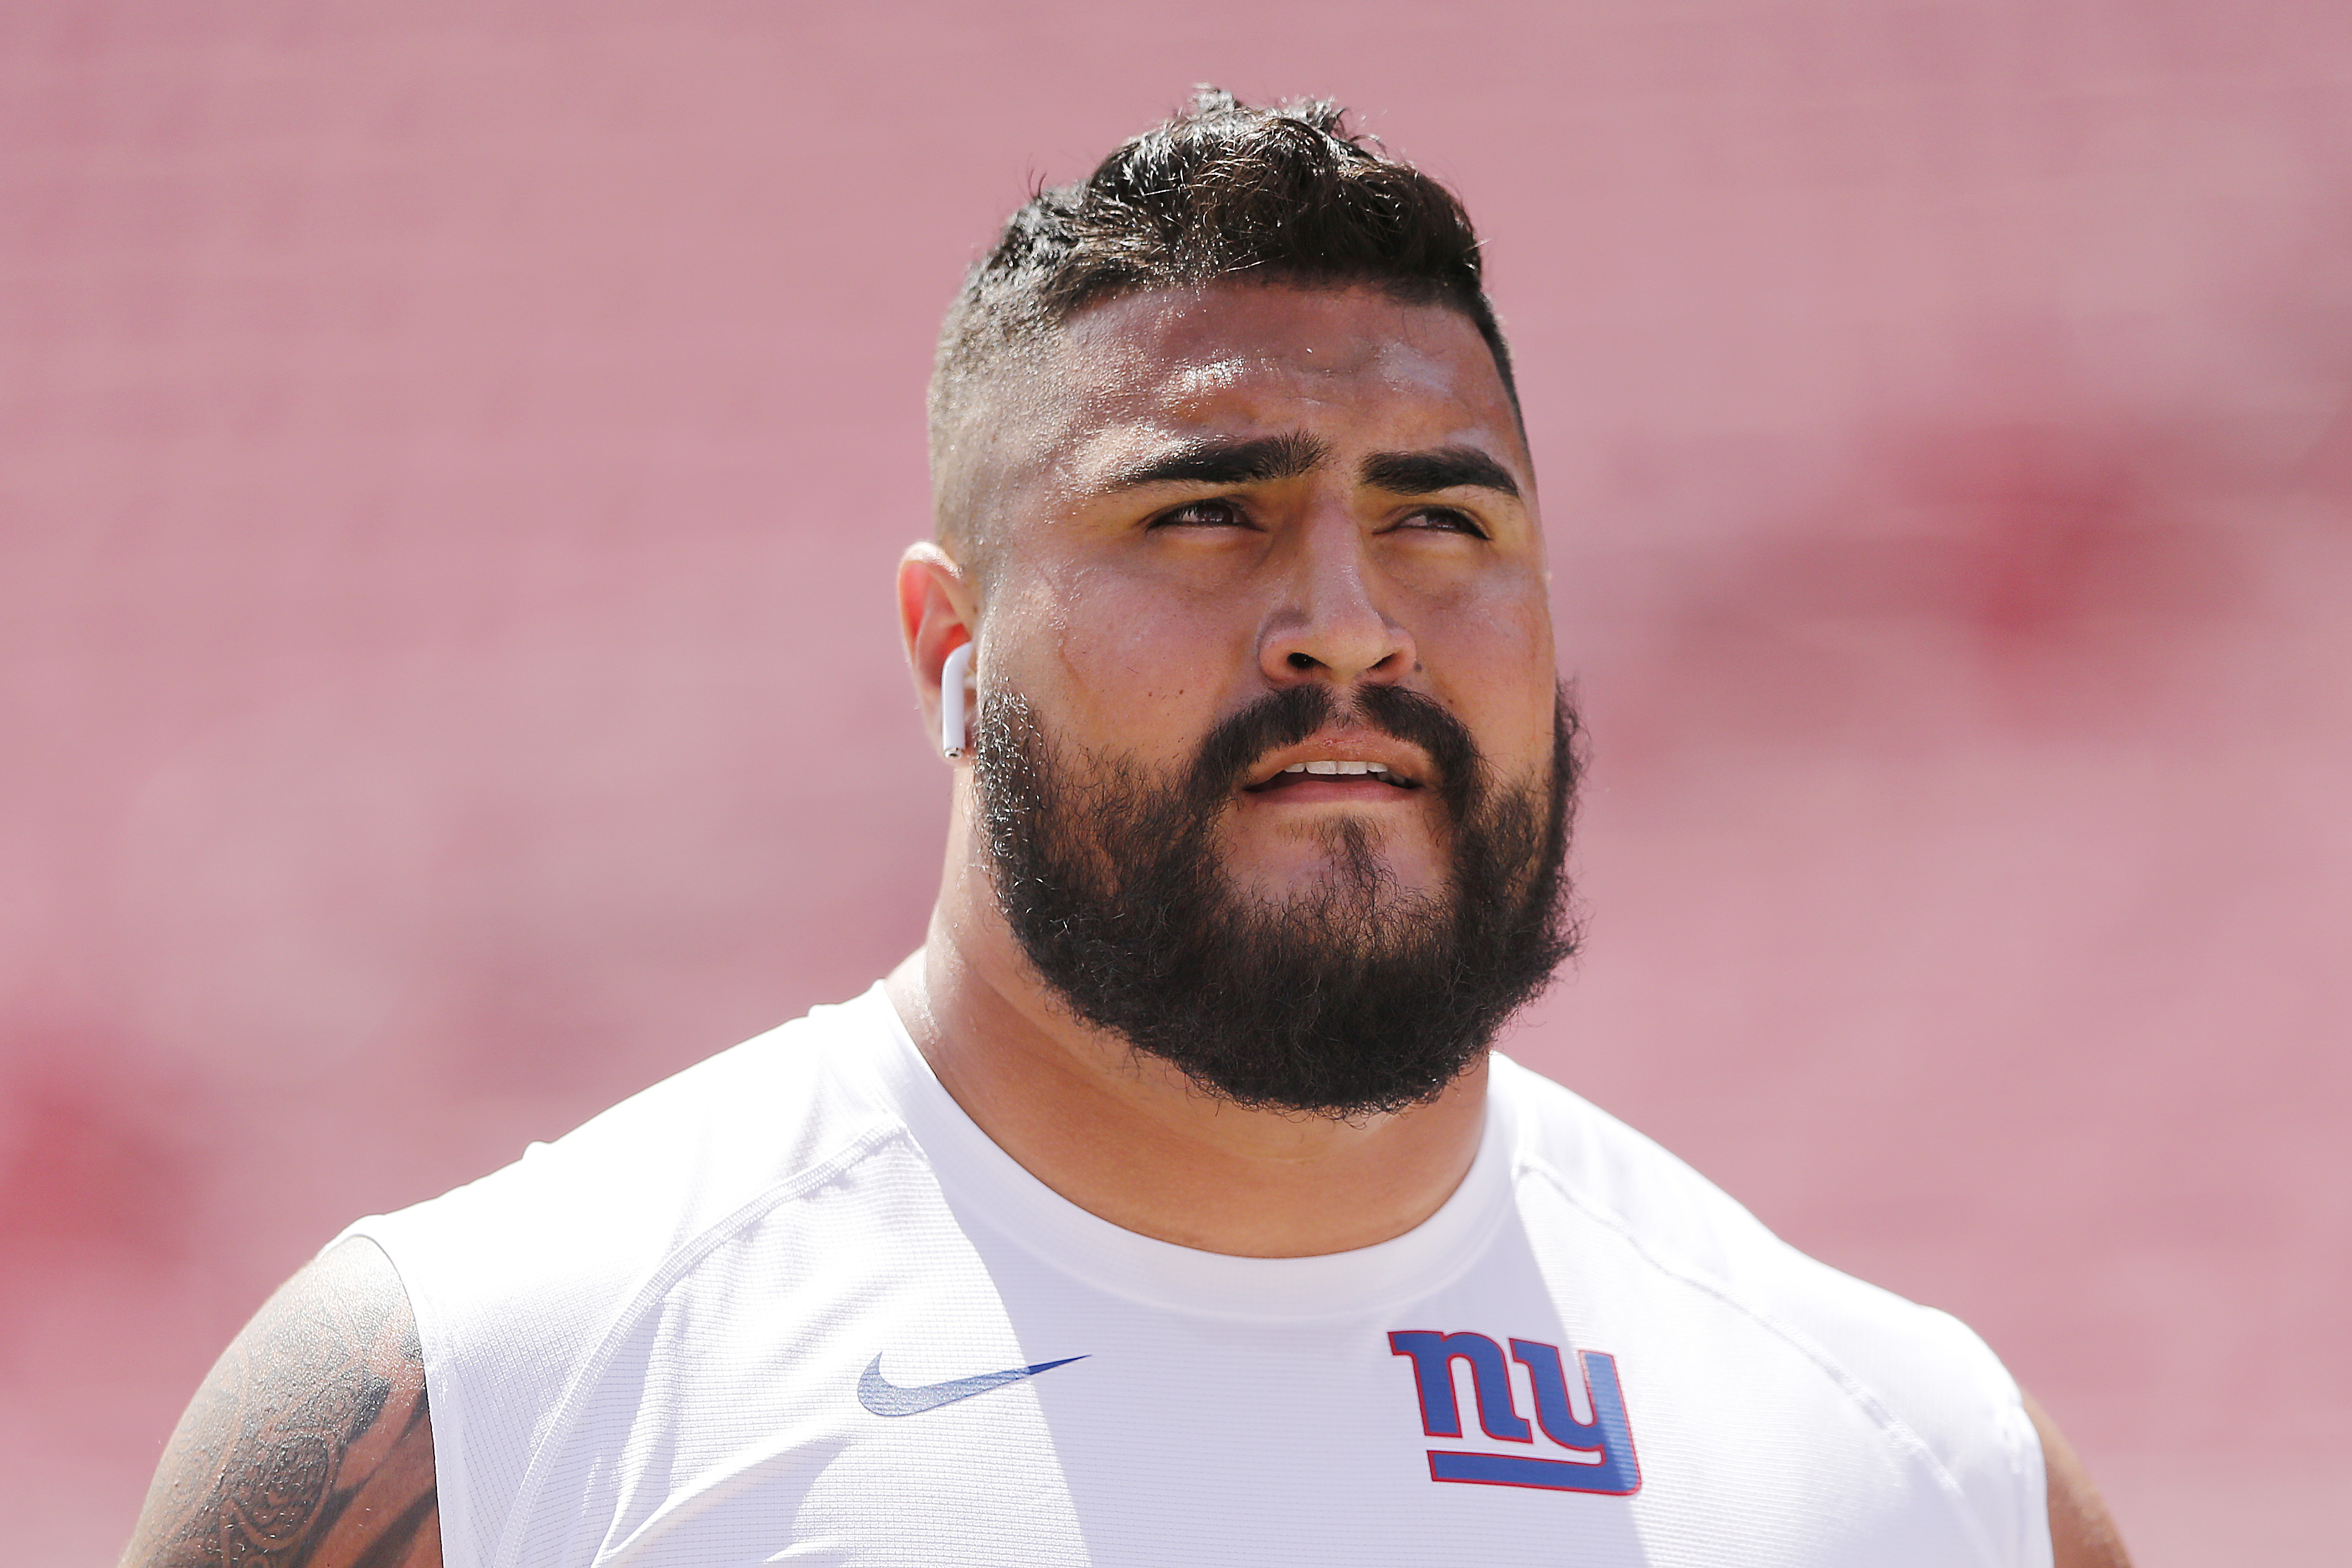 Will Hernandez of the New York Giants looks on prior to a game